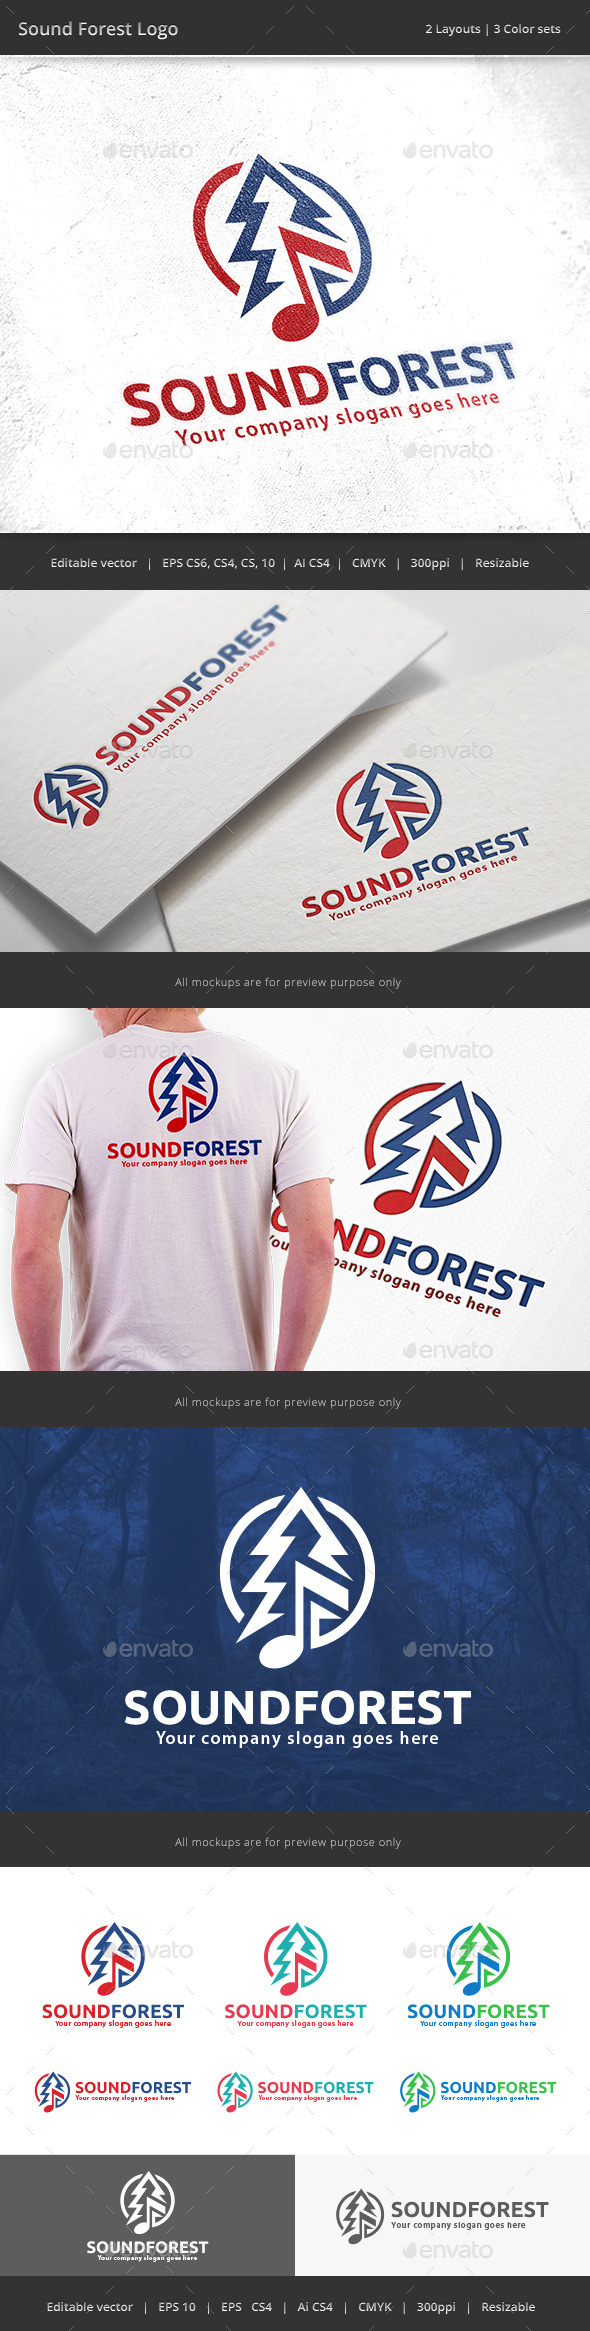 Sound Forest Logo - Vector Abstract